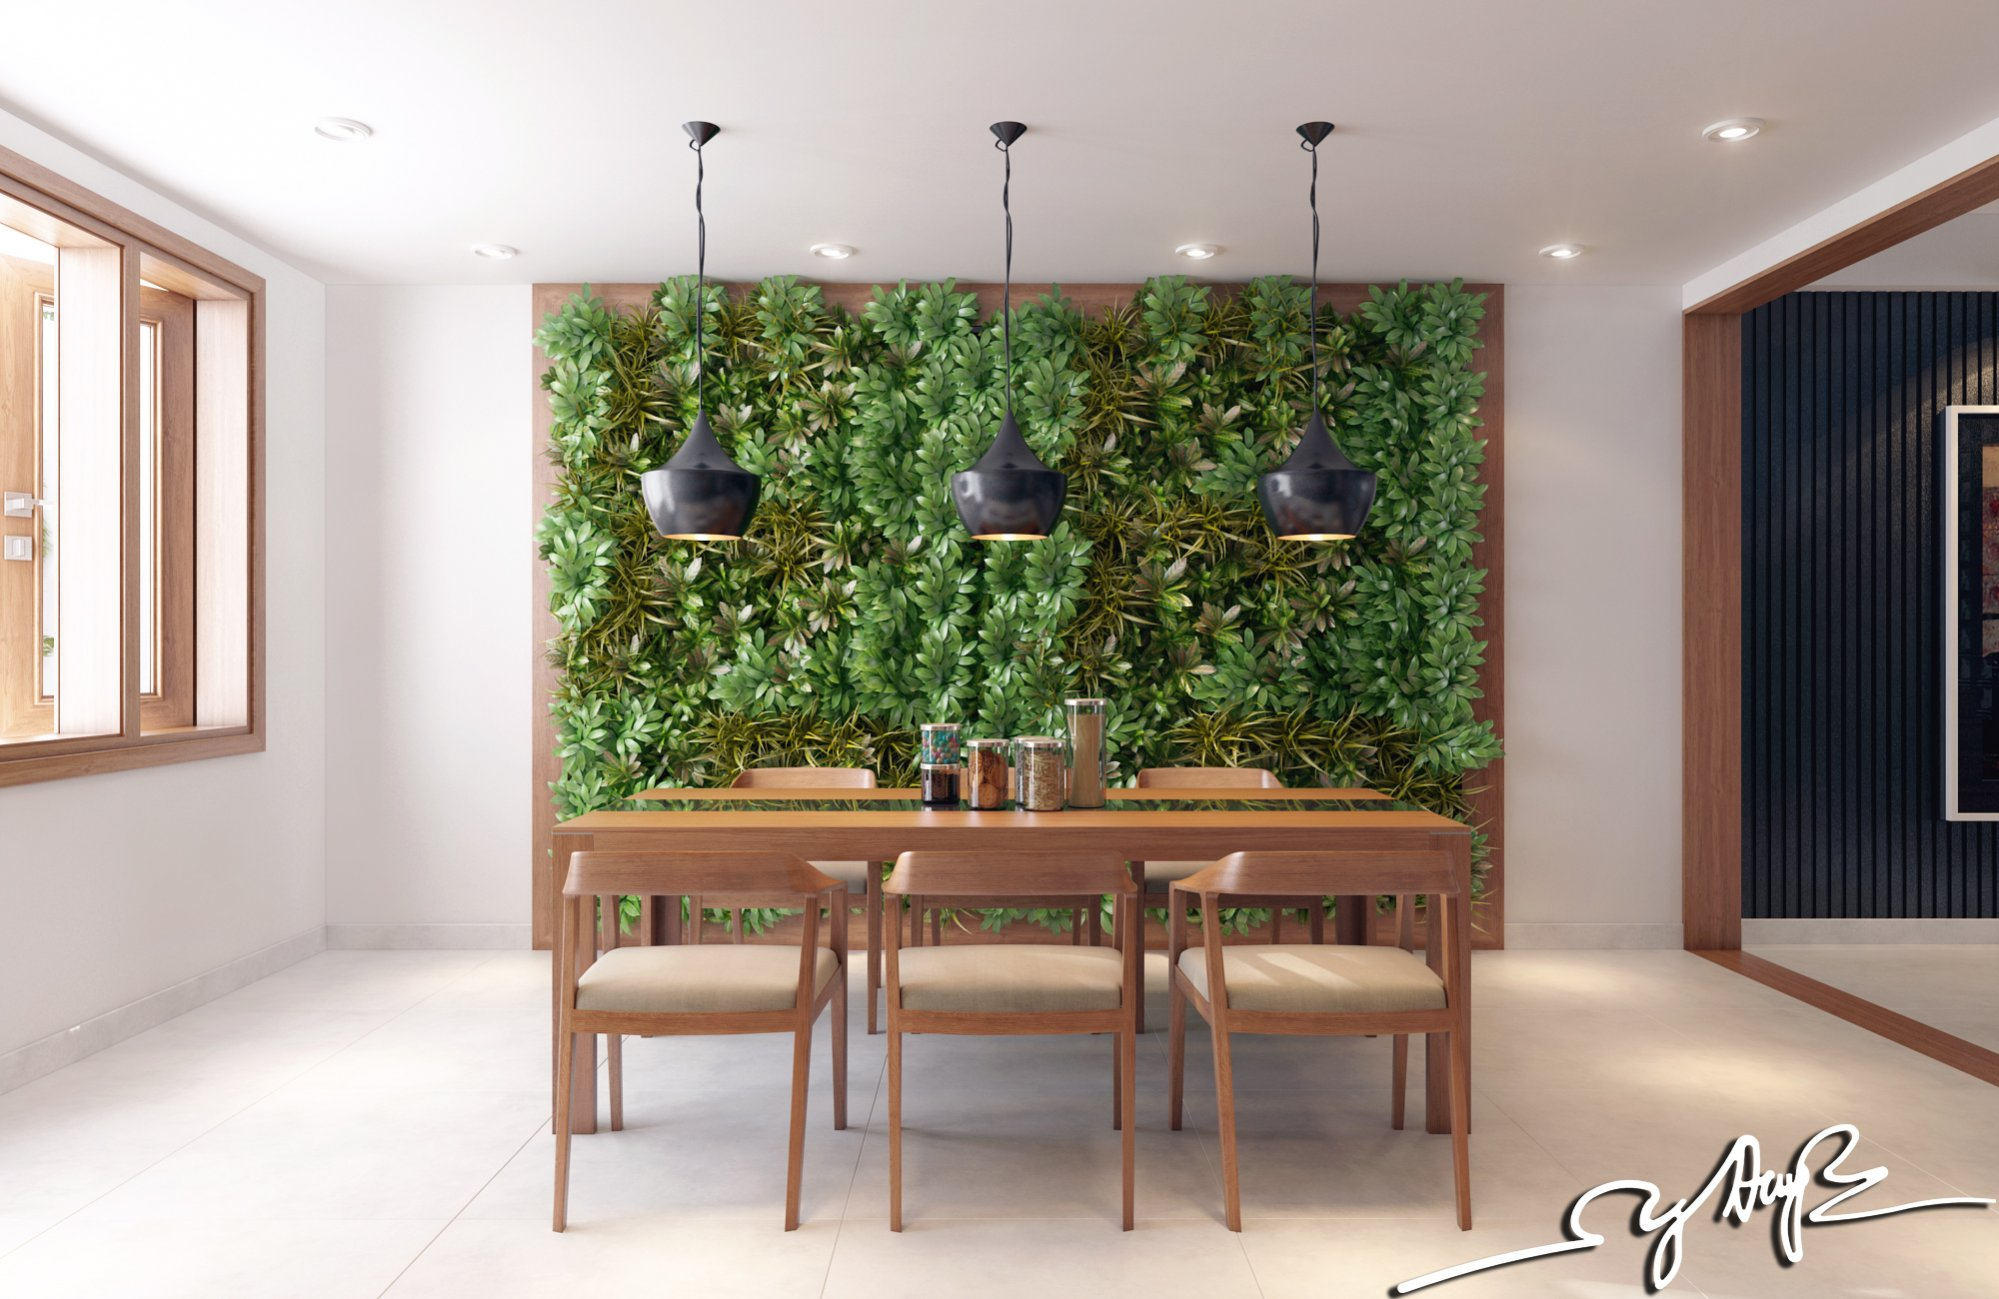 interior design close to nature rich wood themes and indoor vertical gardens - Inside Wall Design